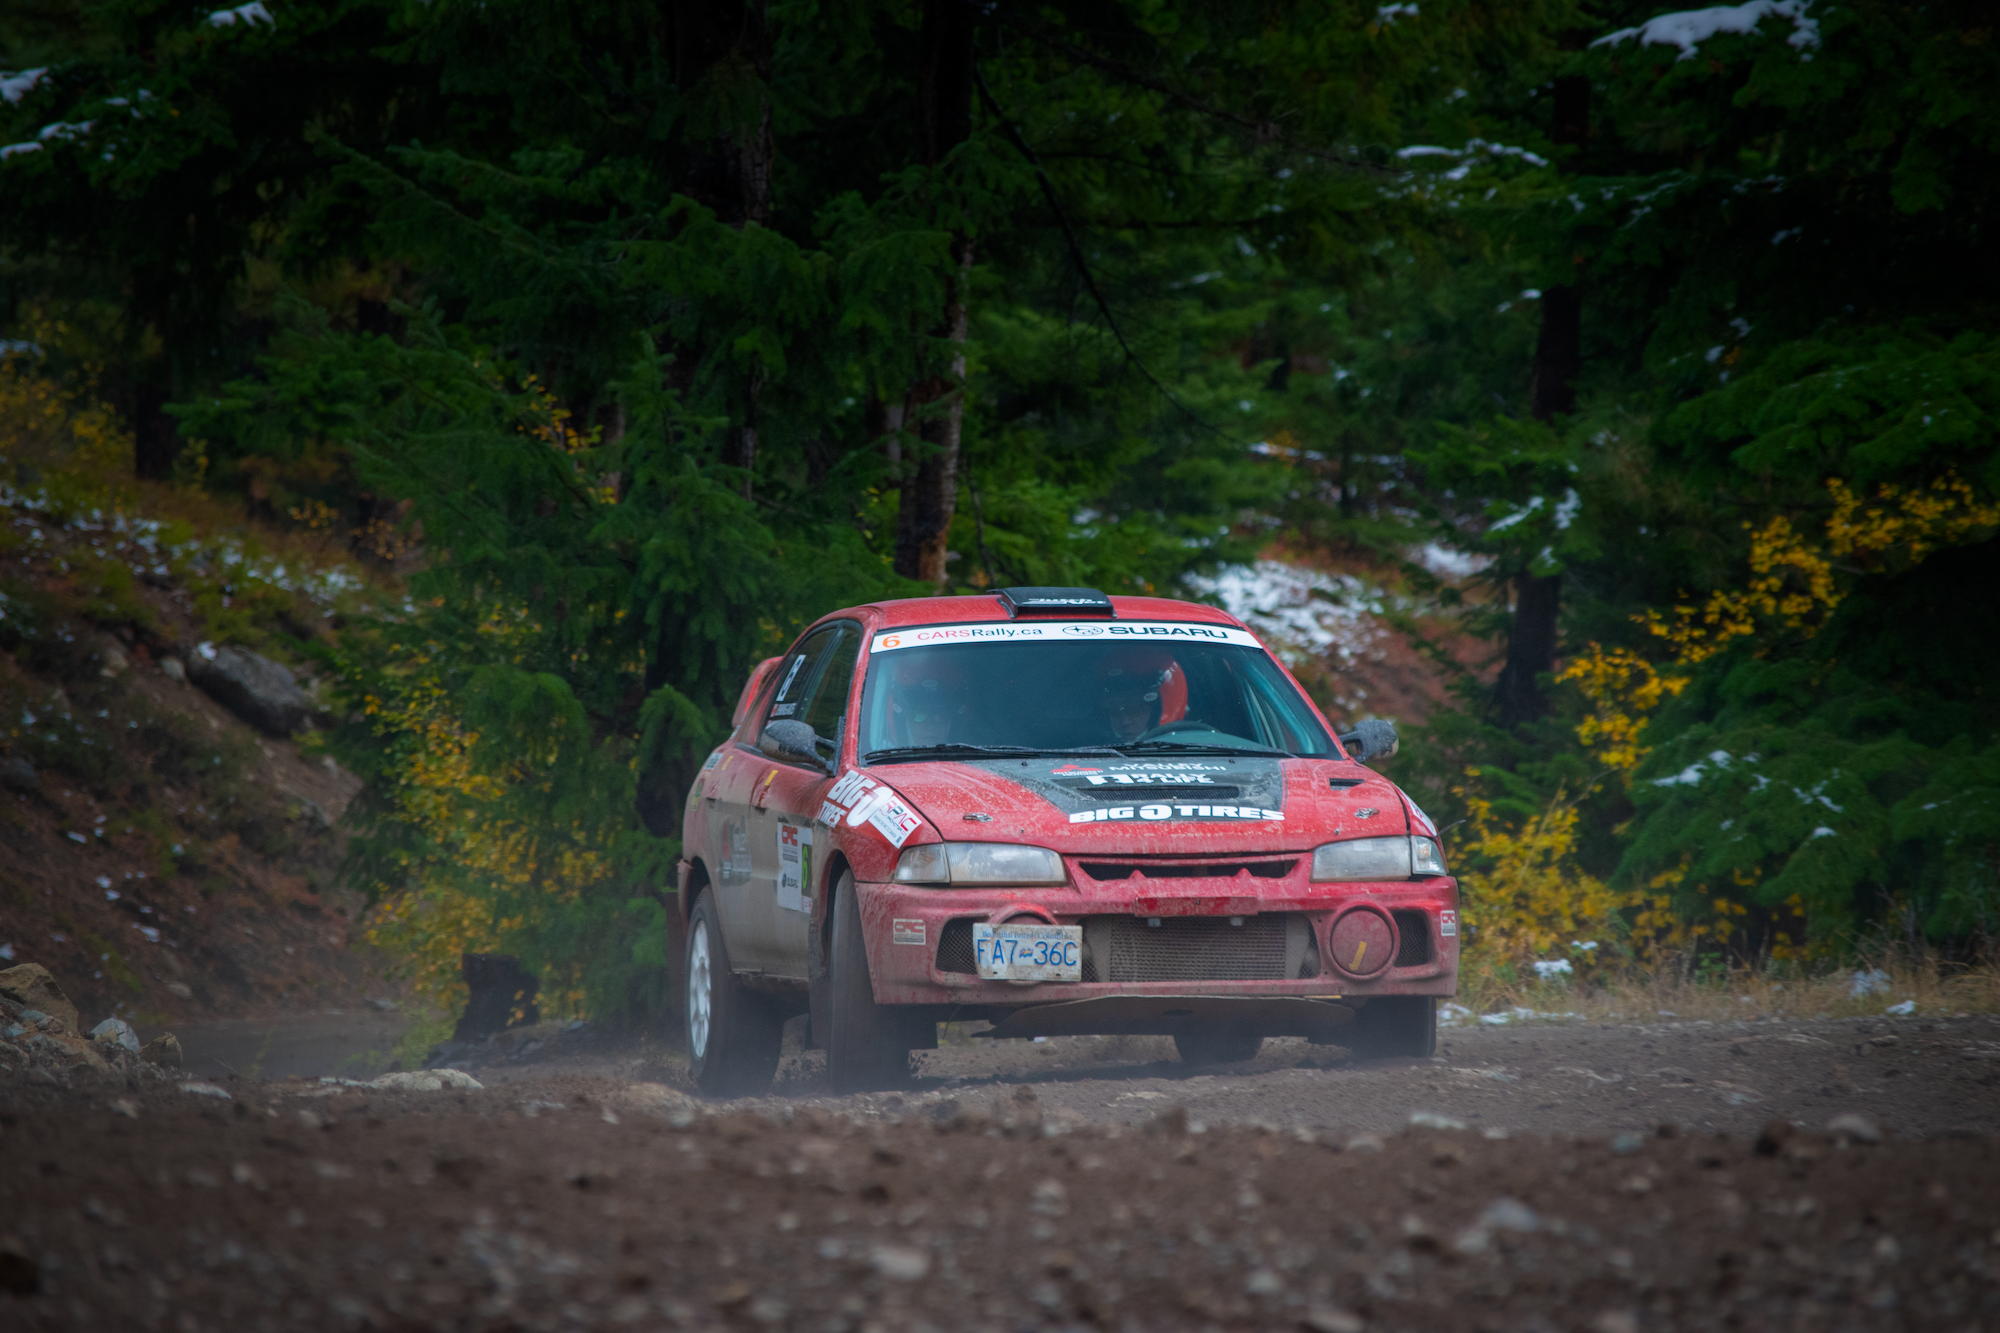 Valley Mitsubishi Evo 4 at Pacific Forest Rally